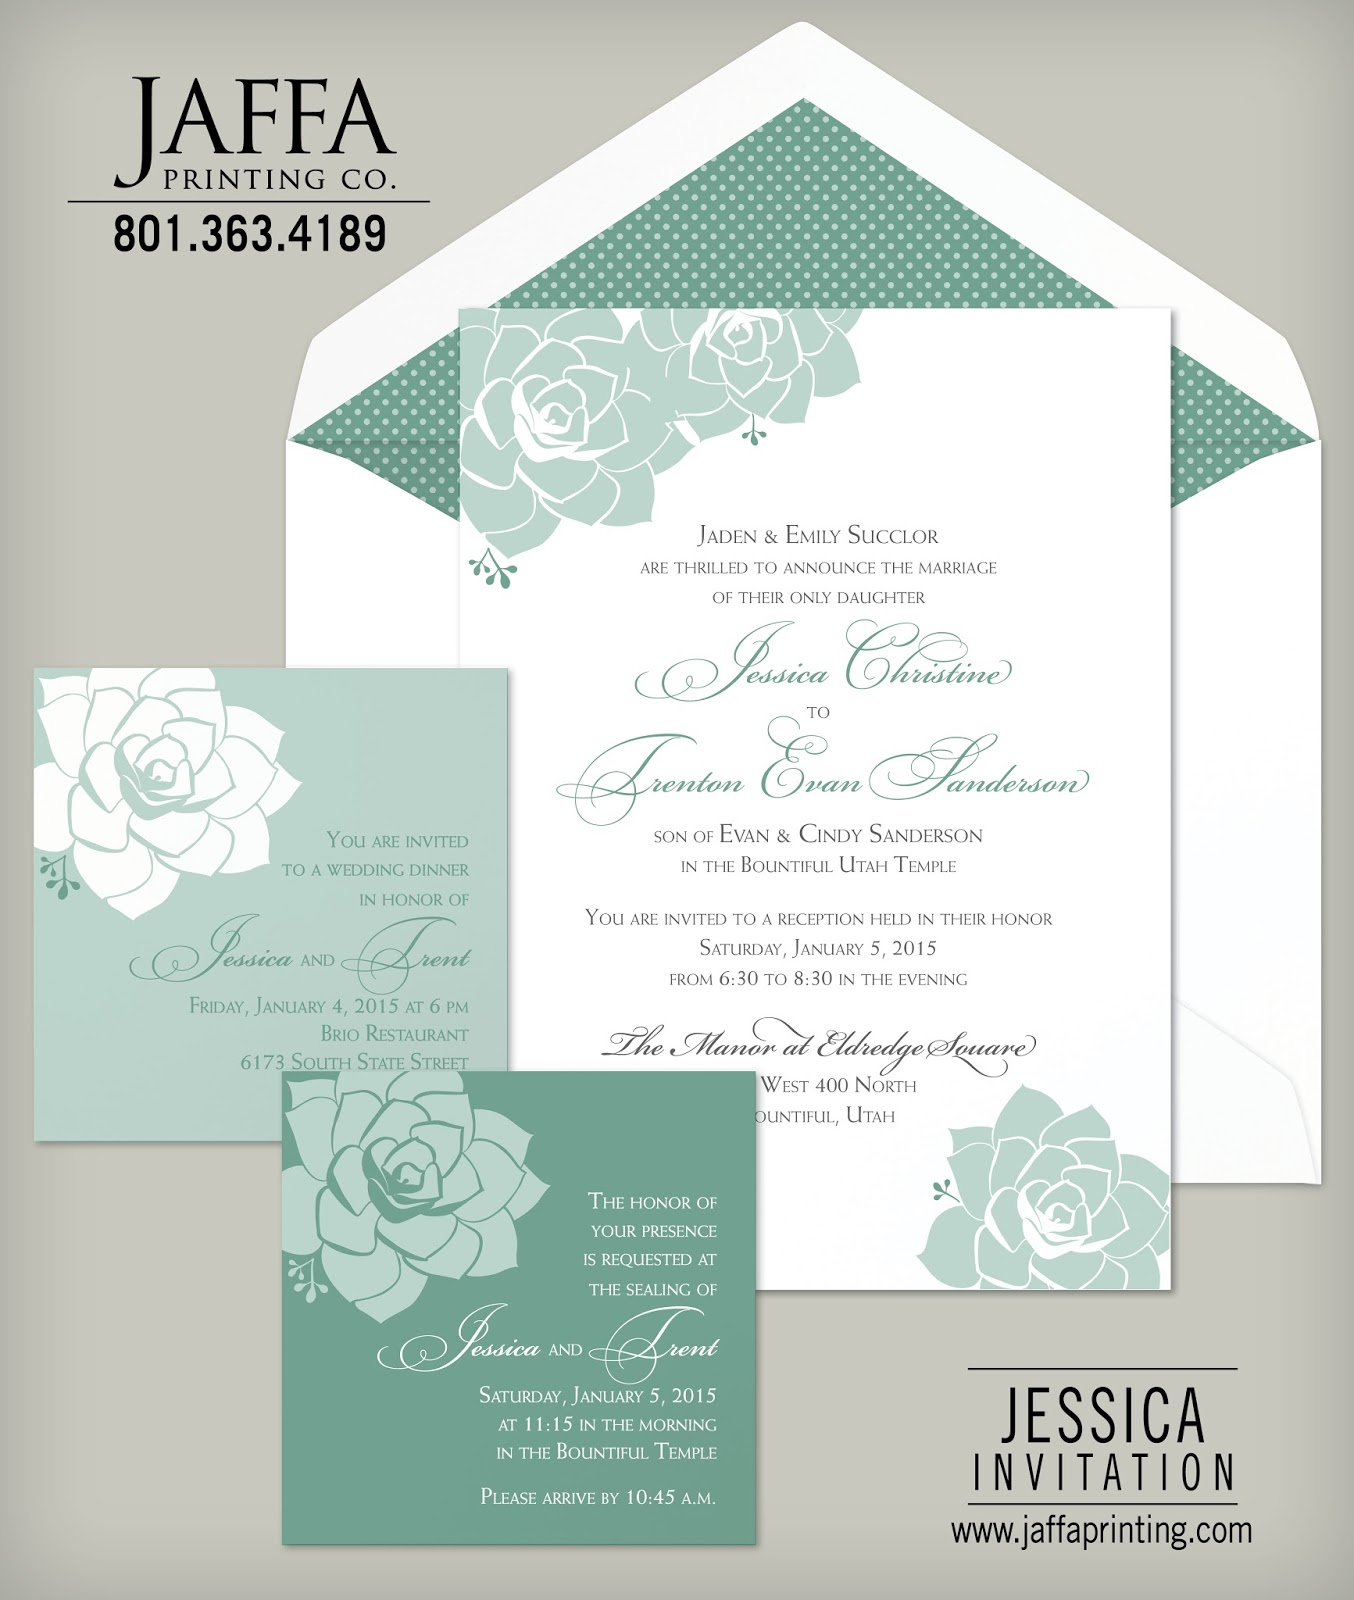 Wedding invitation blog floral succulents the jessica wedding wedding invitation blog floral succulents the jessica wedding invitation stopboris Image collections